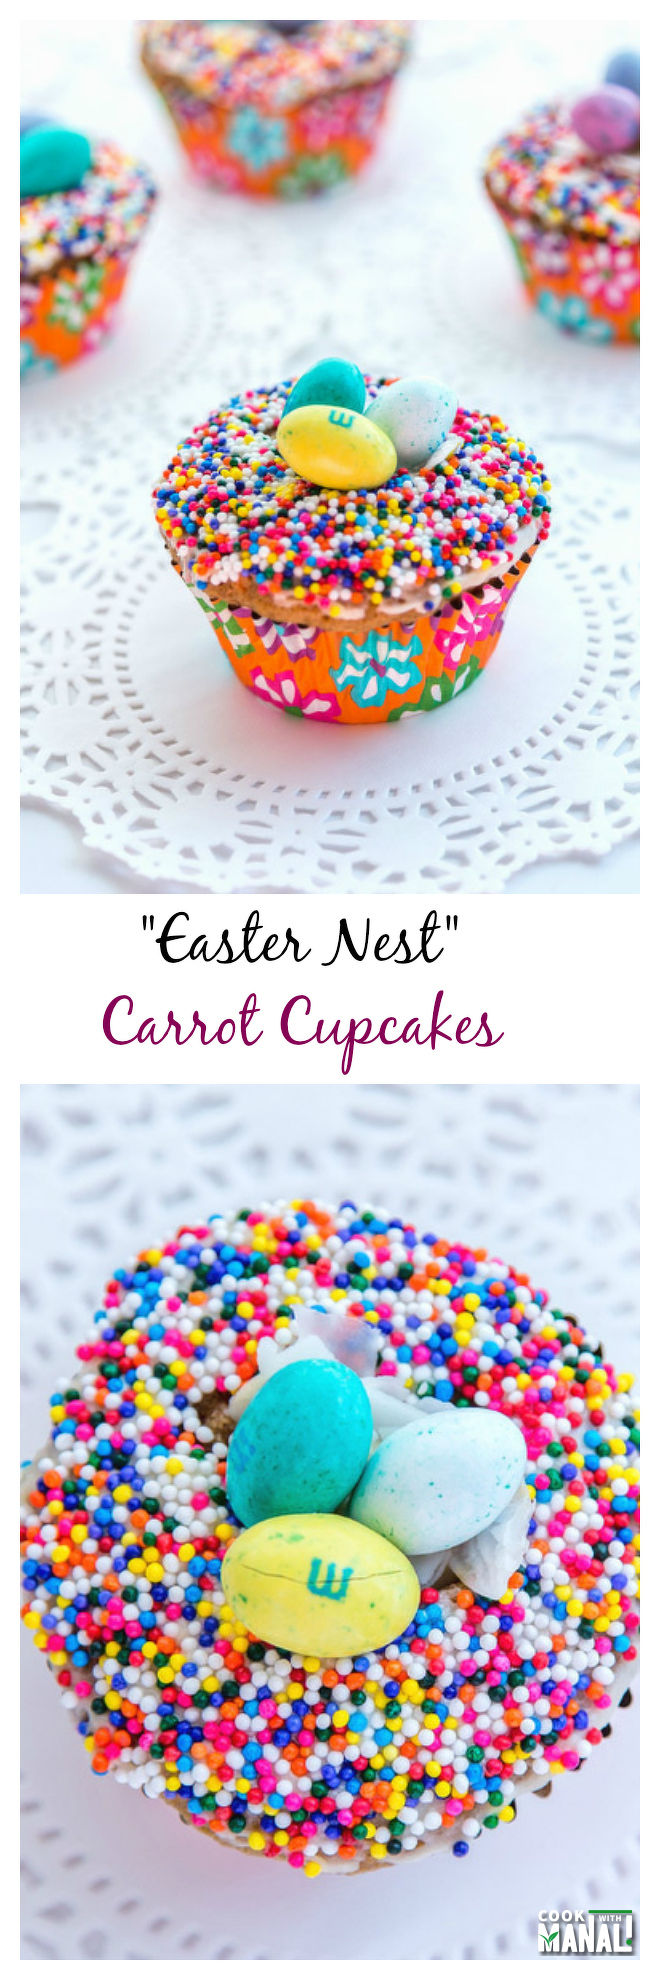 Easter-Nest-Carrot-Cupcakes-Collage